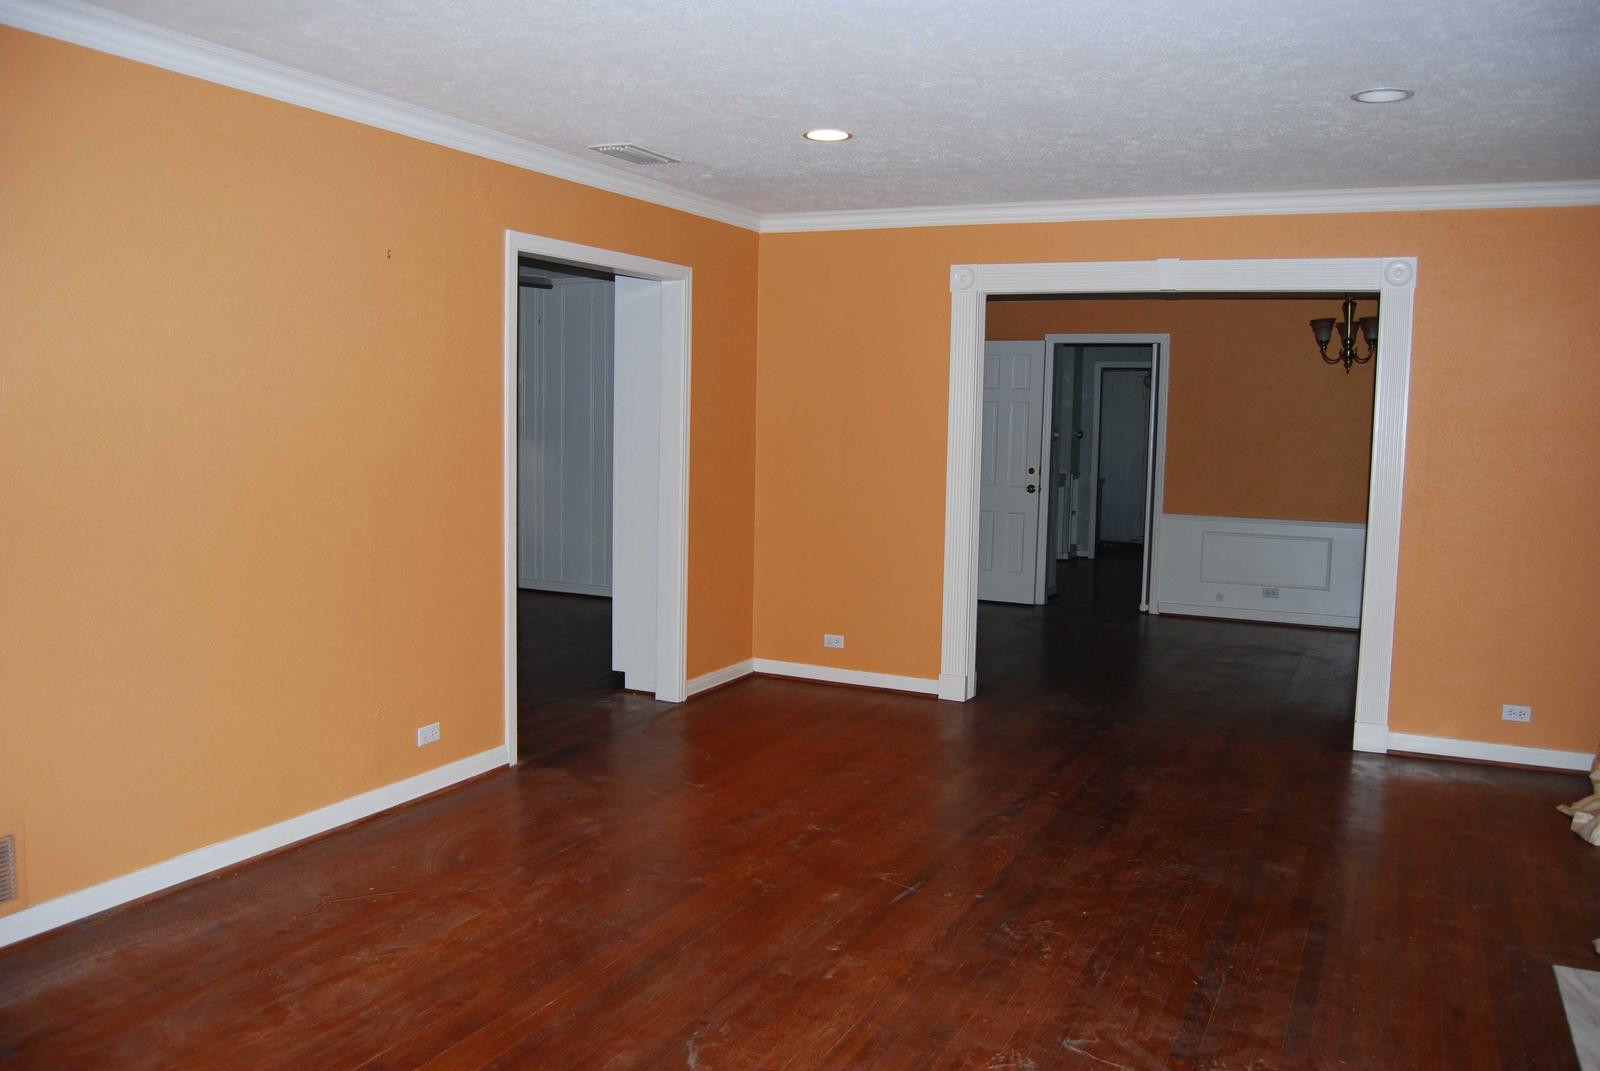 Best ideas about Wall Paint Colors . Save or Pin interior wall paint colors 2017 Grasscloth Wallpaper Now.